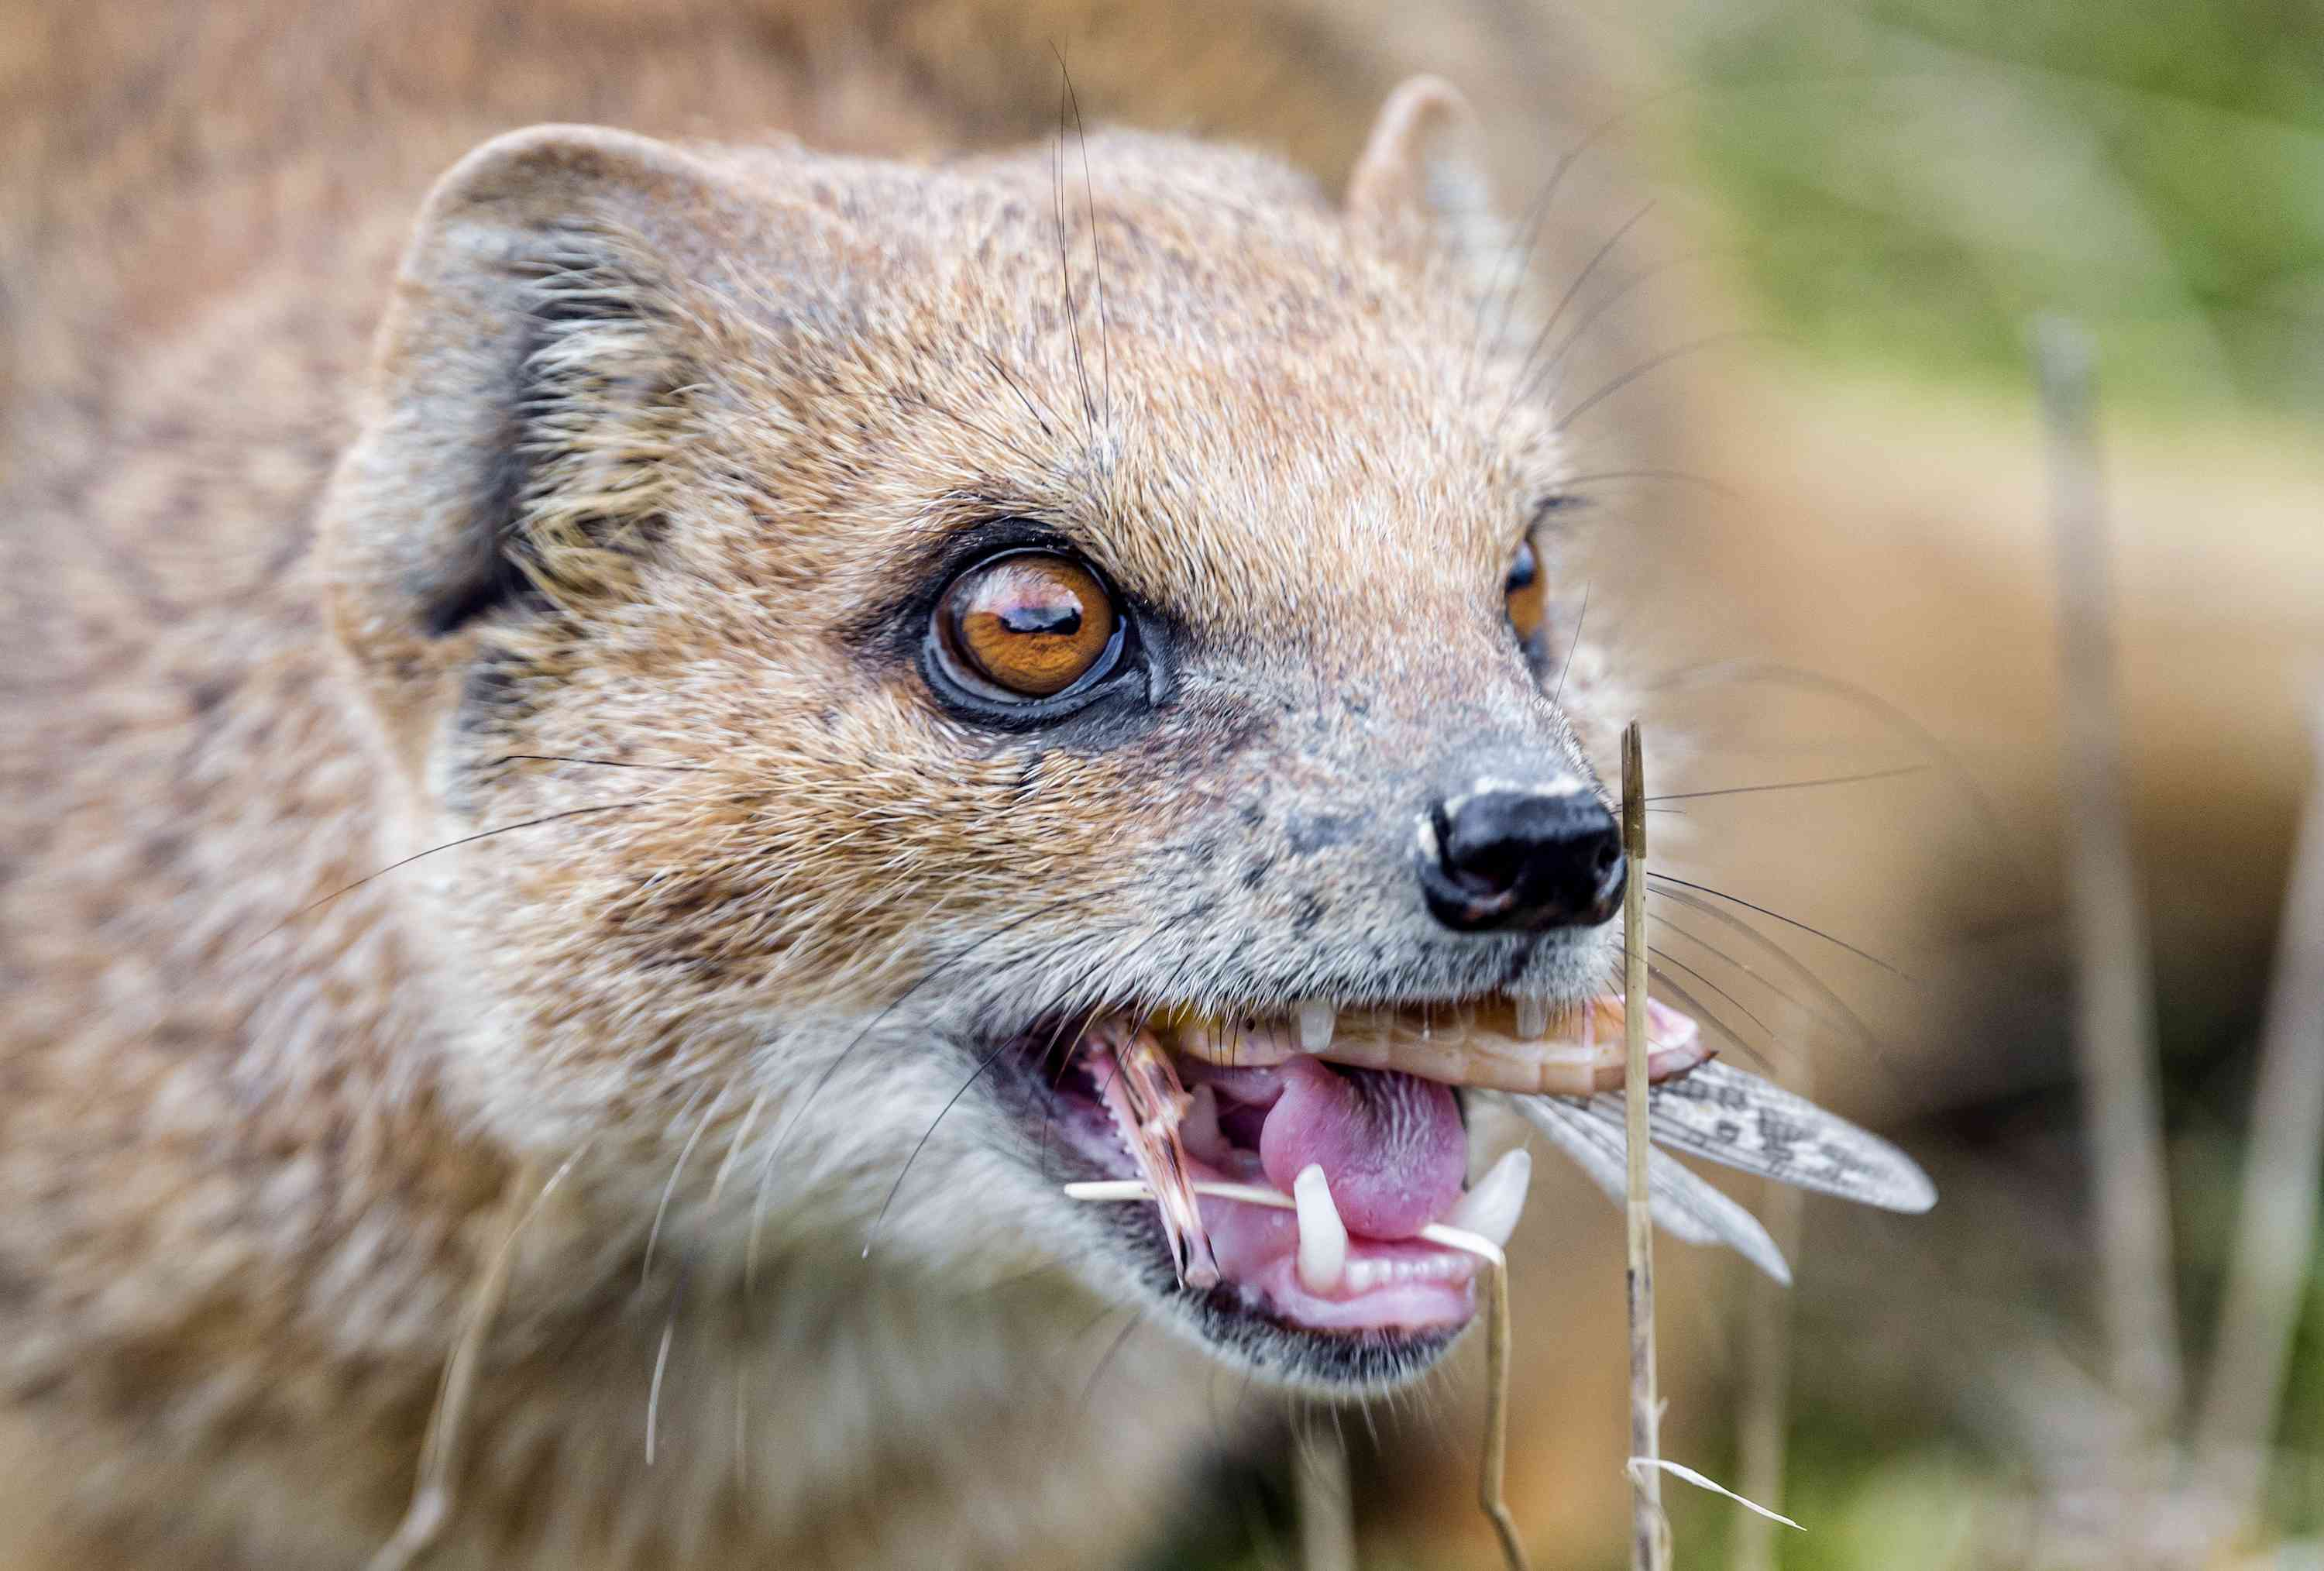 yellow mongoose eating an insect